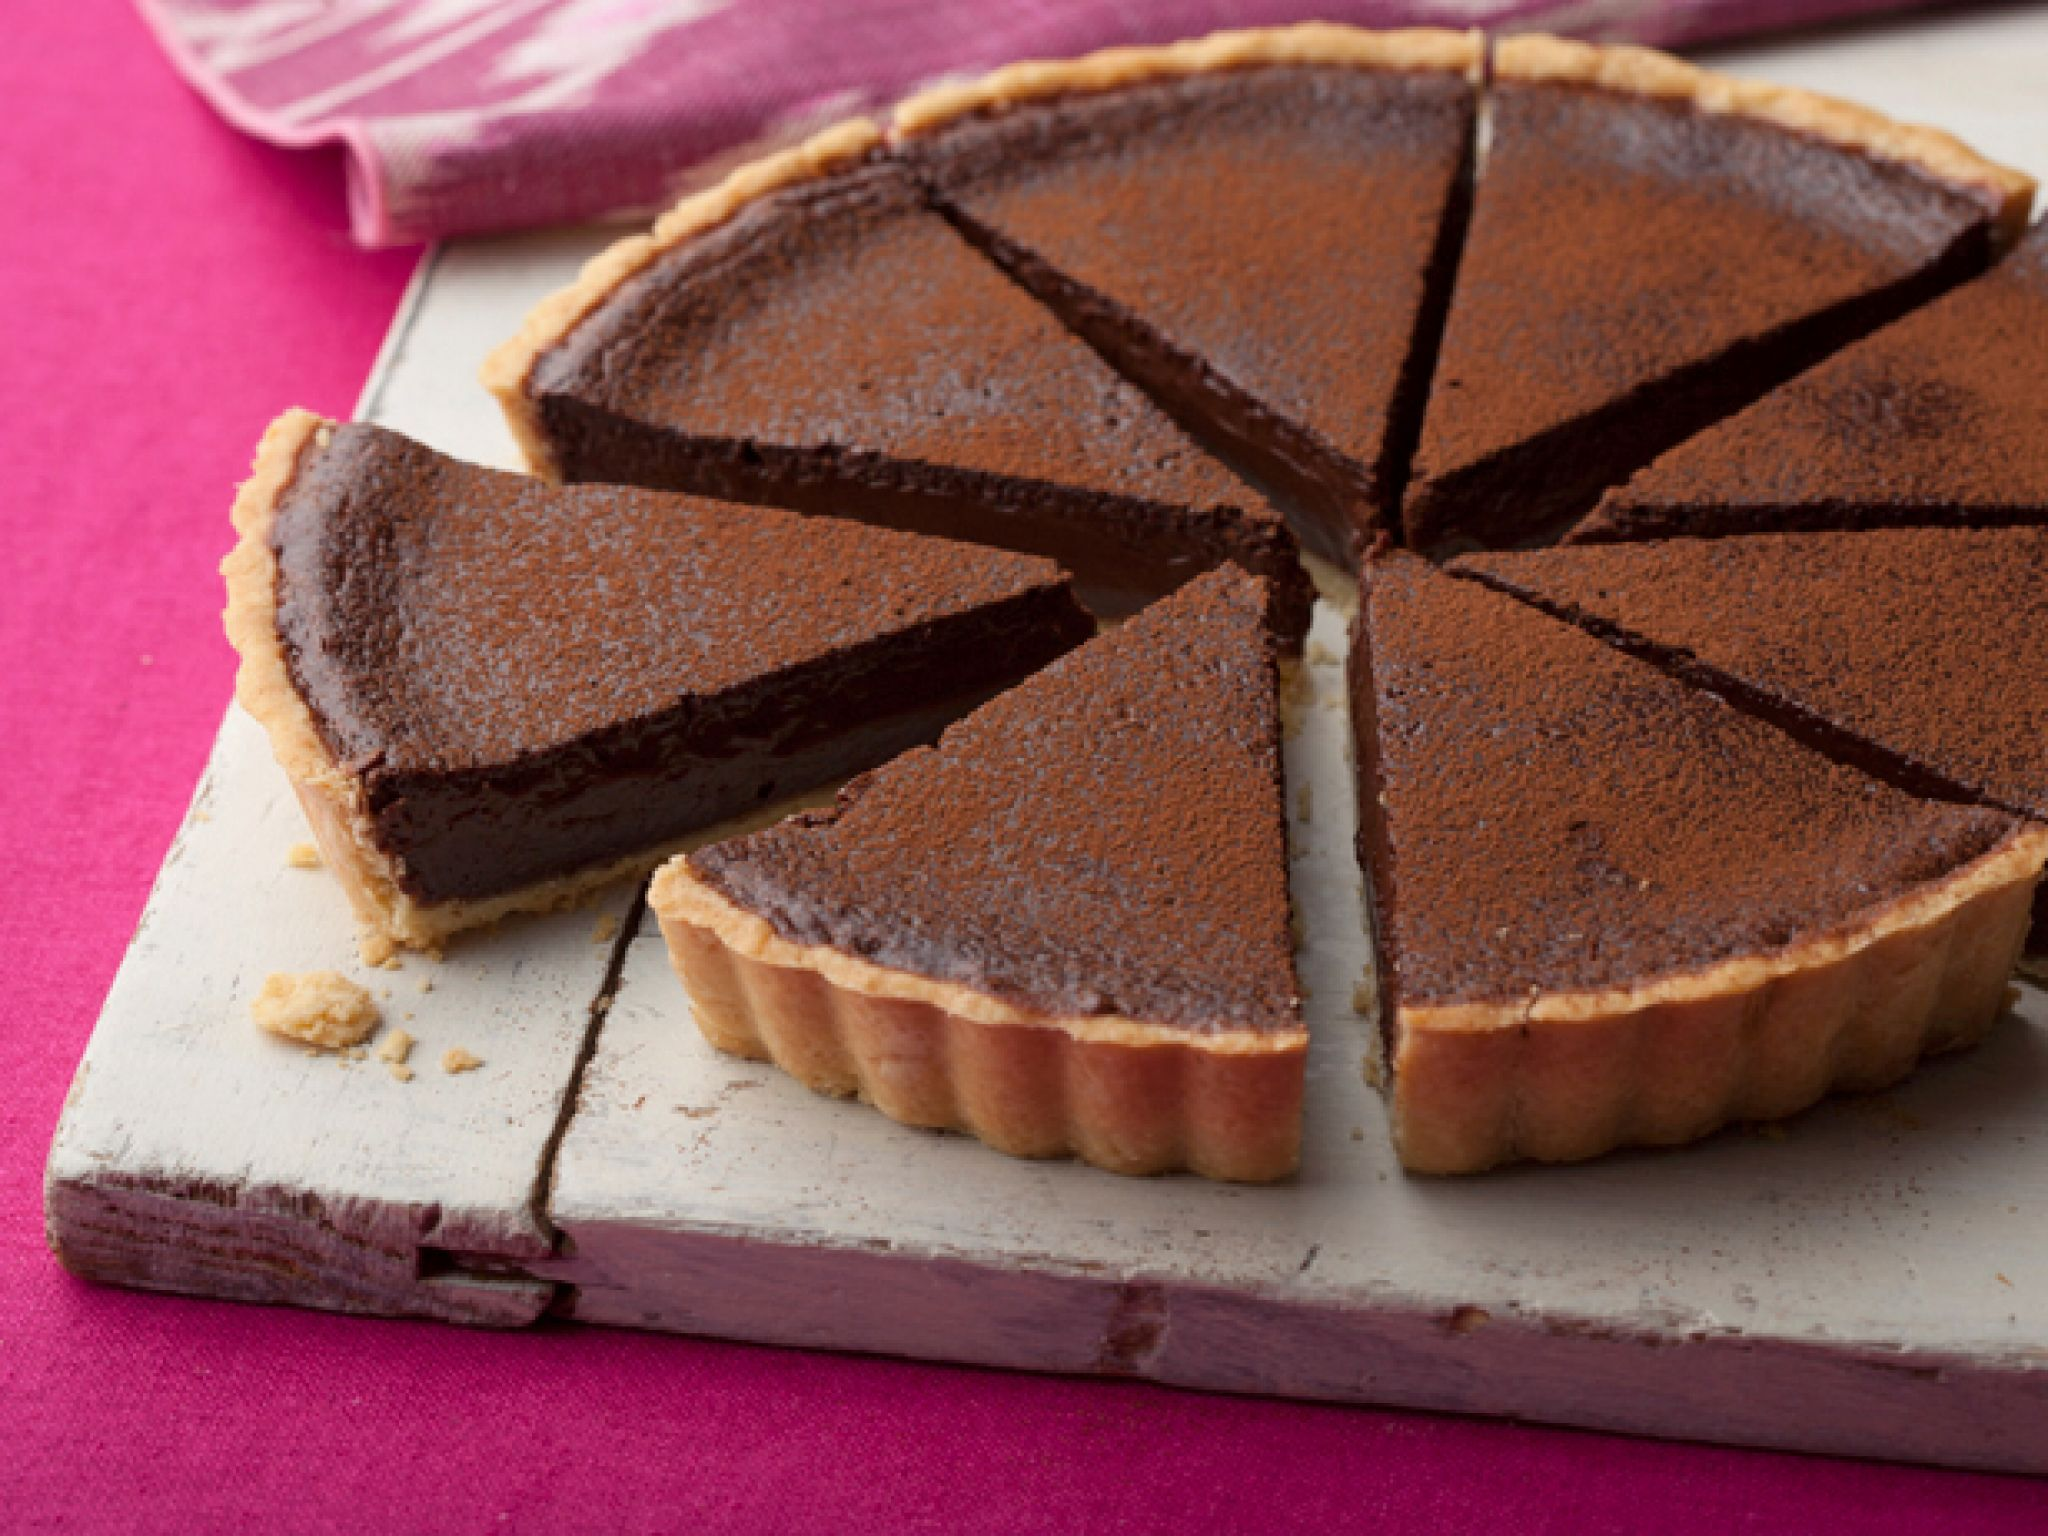 Chocolate tart recipe tyler florence chocolate tarts and tart chocolate tart recipe tyler florence chocolate tarts and tart recipes forumfinder